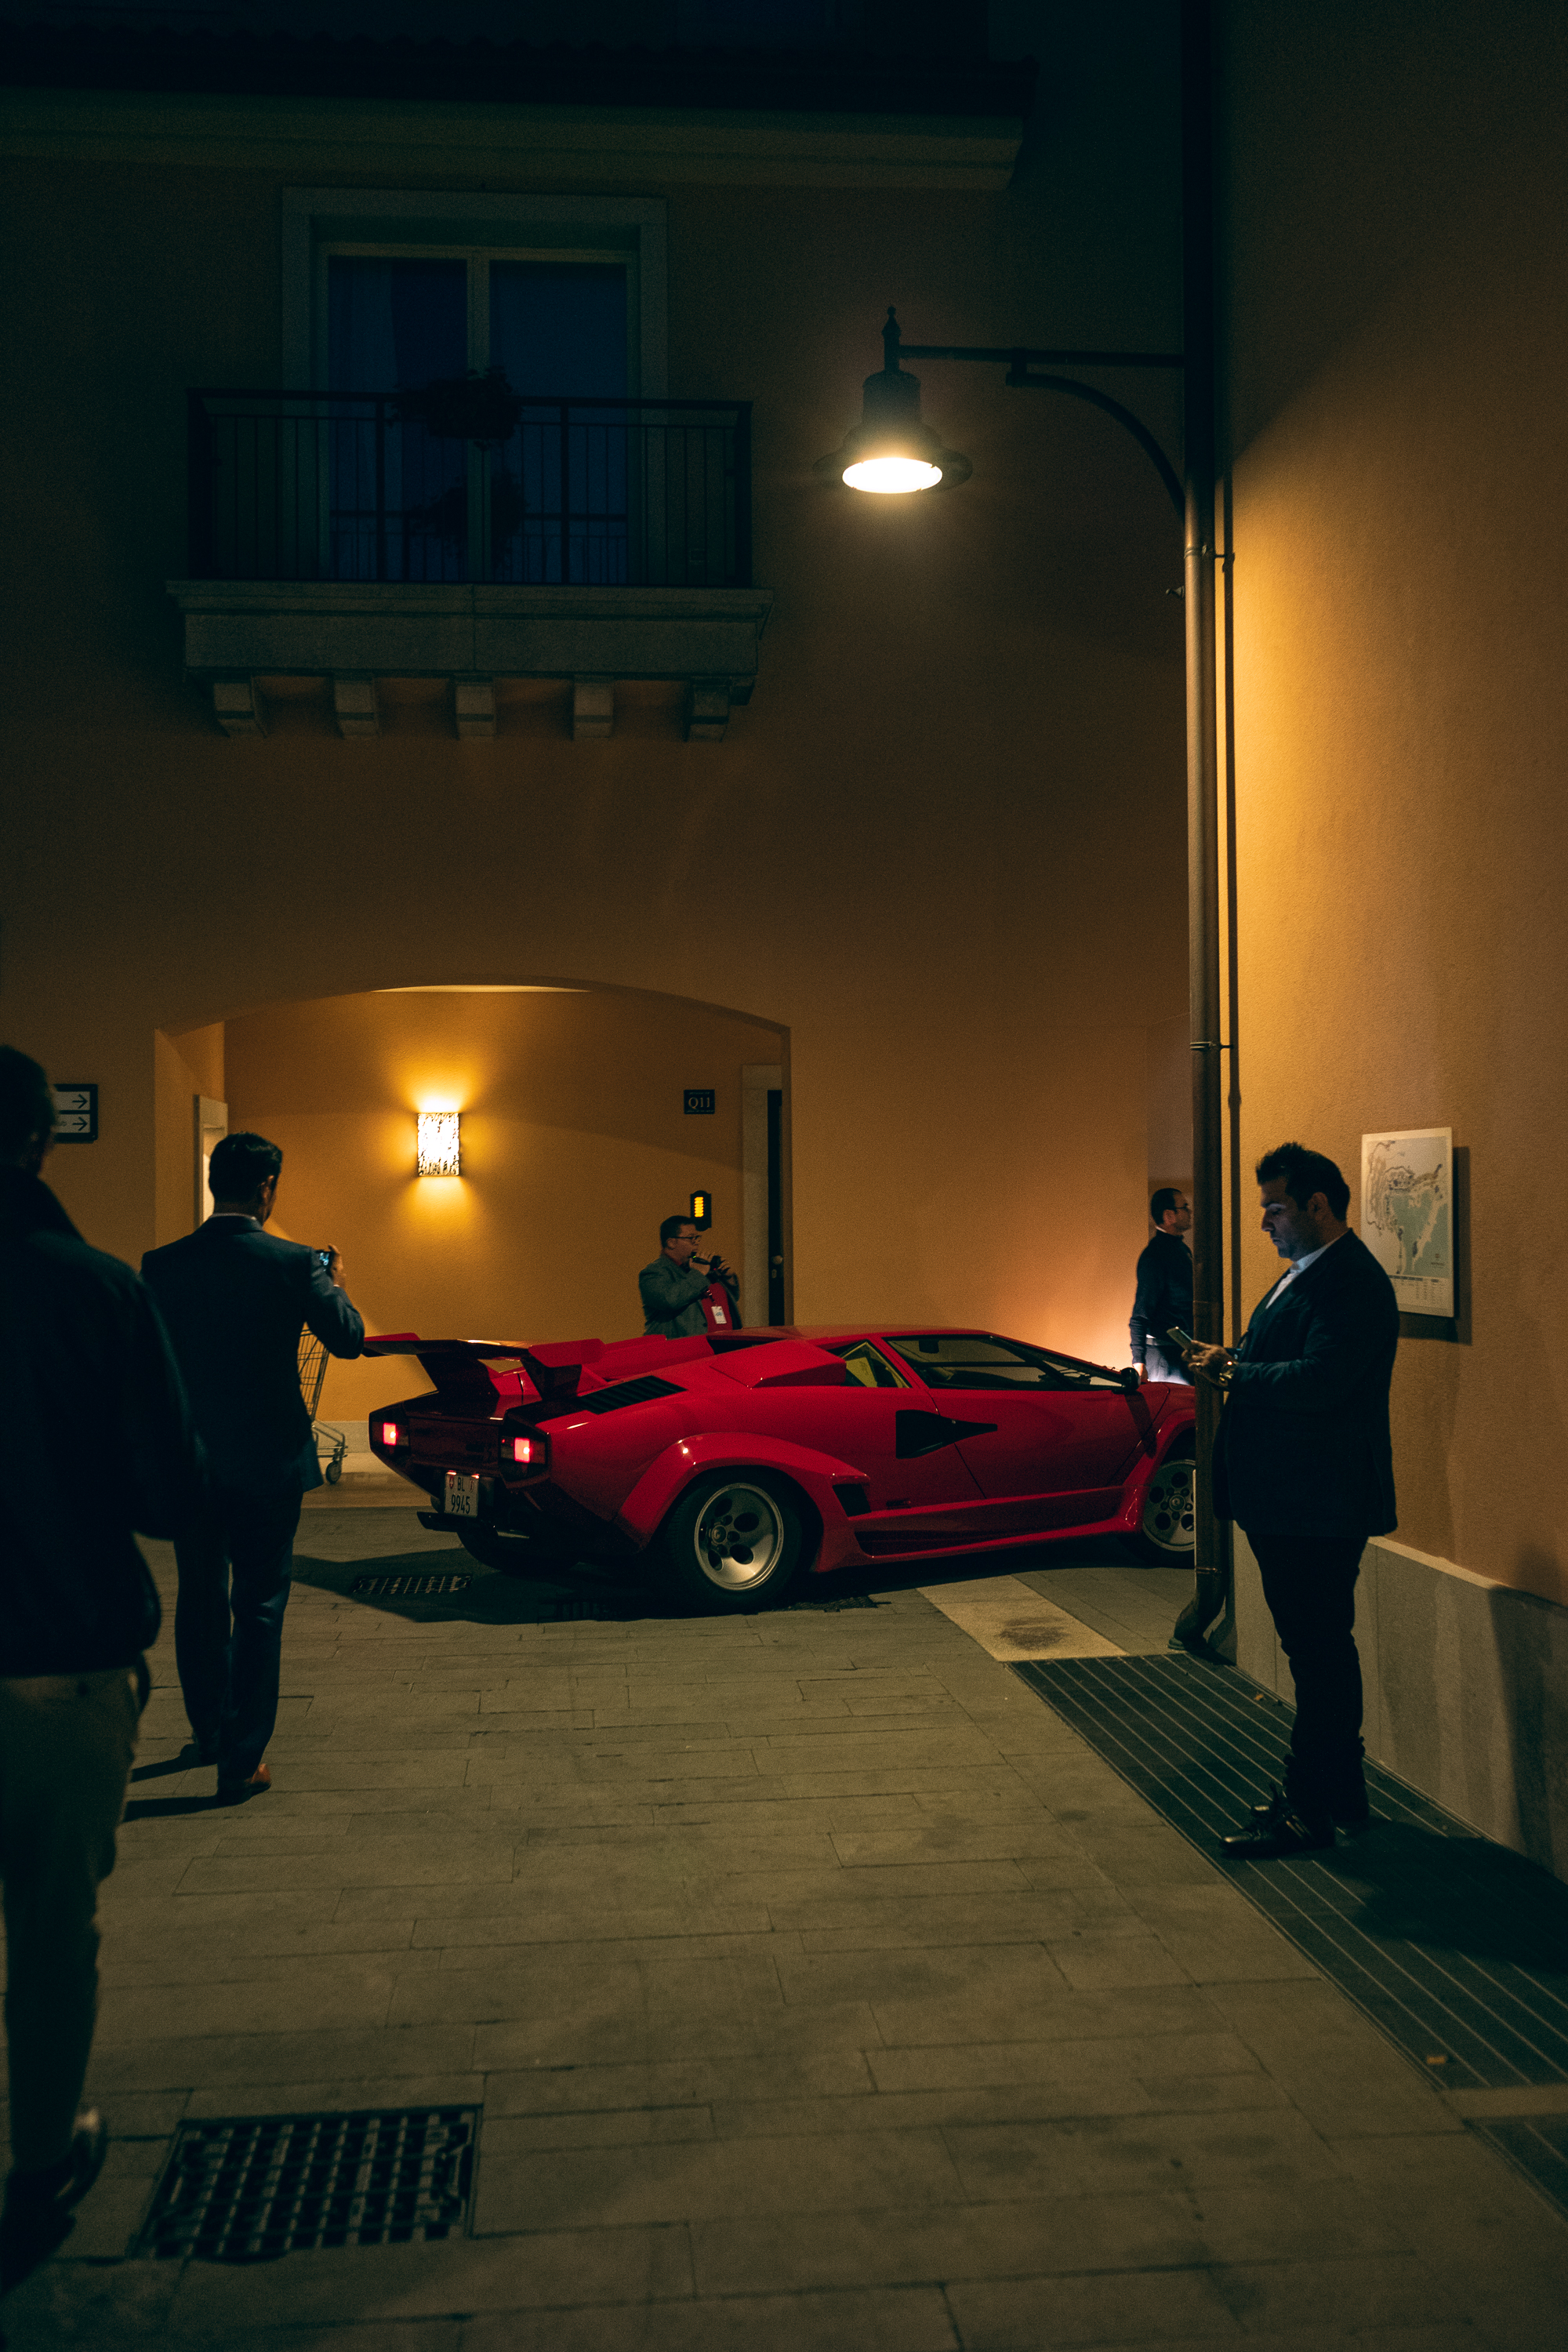 Countach by night.